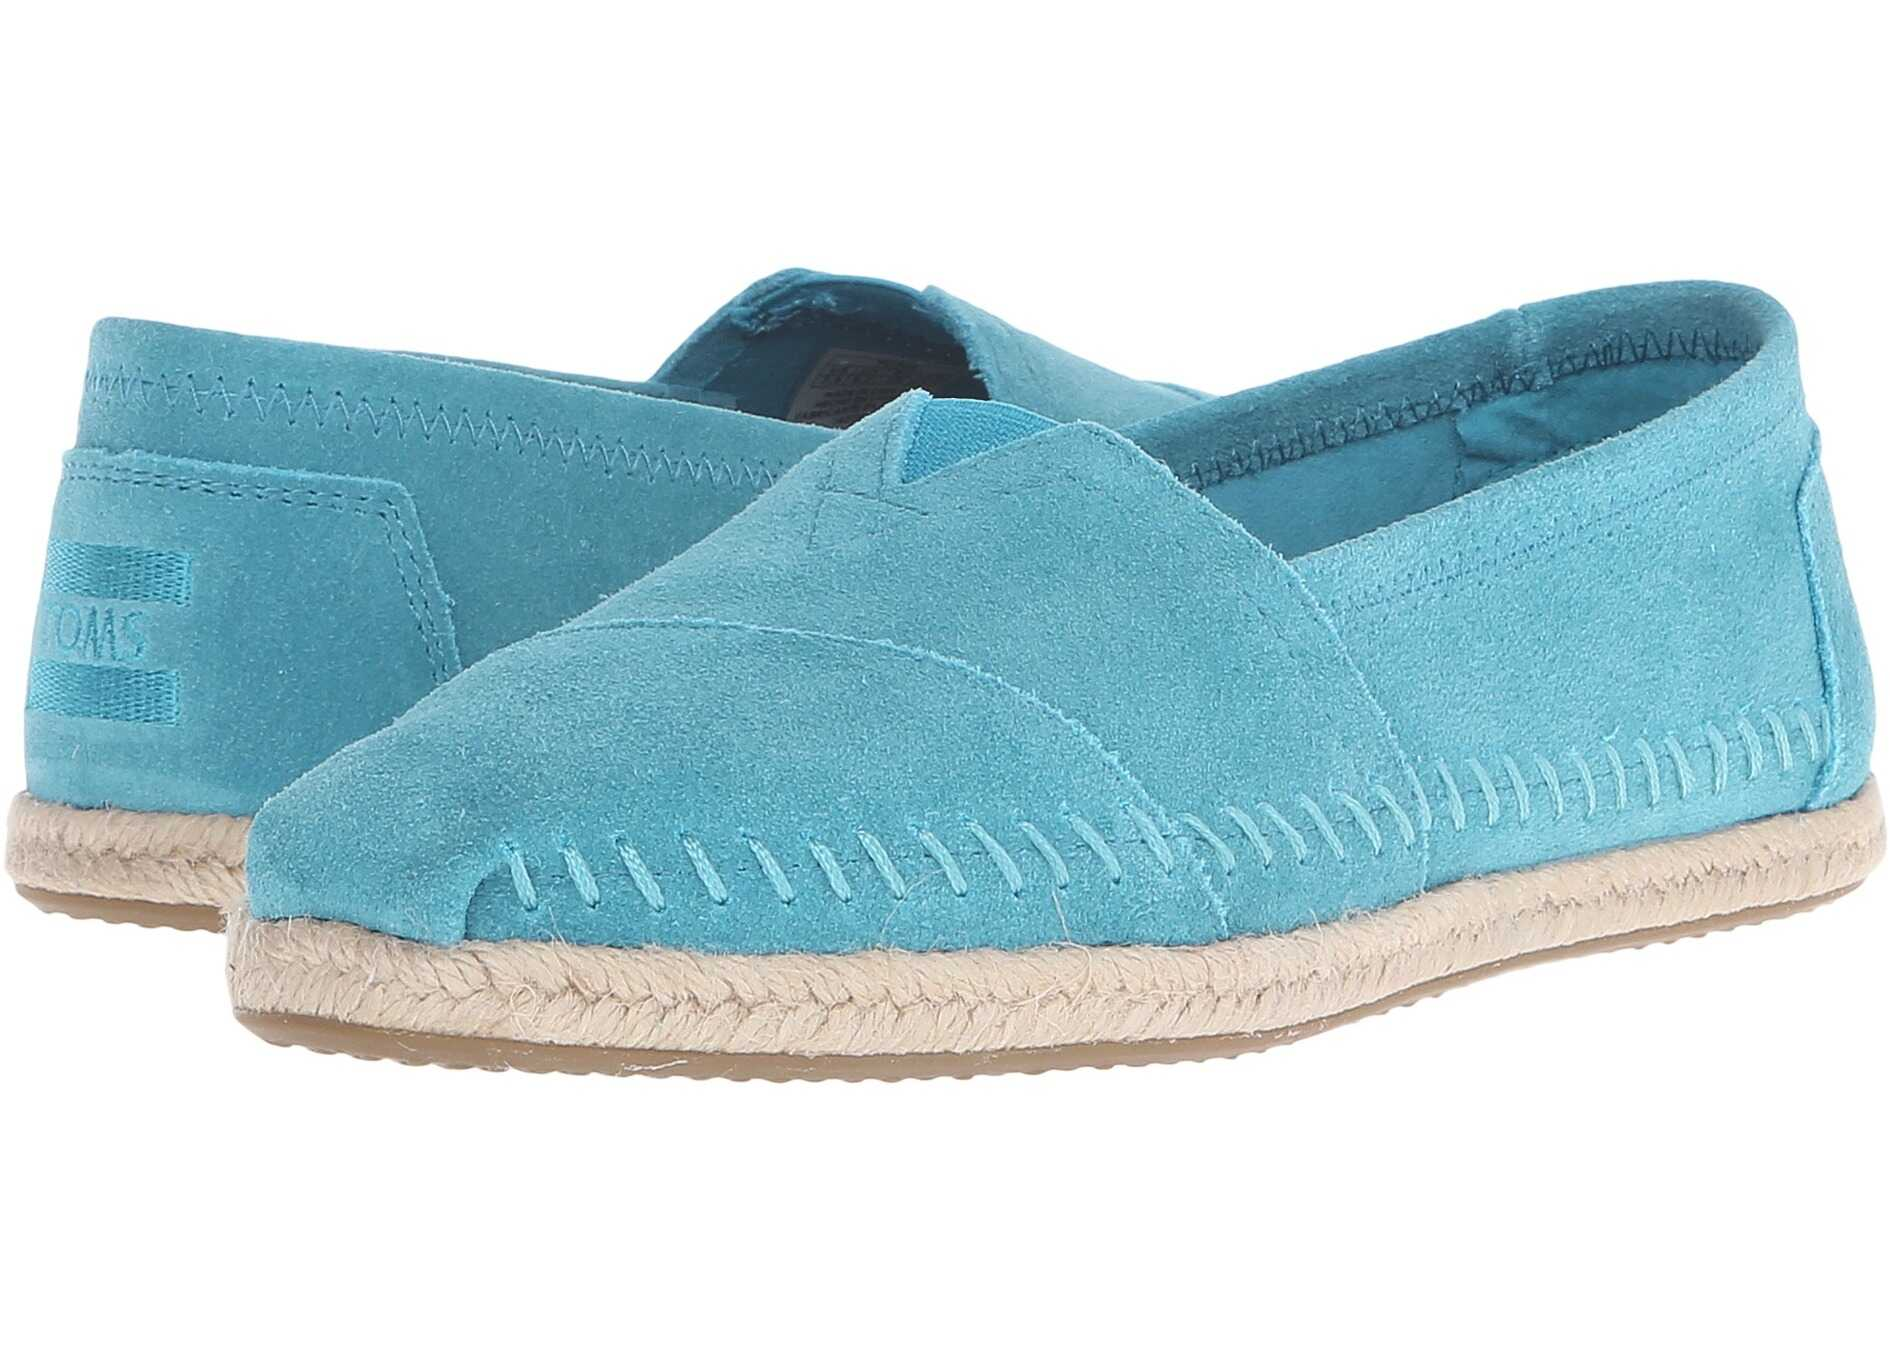 TOMS Seasonal Classics Turquoise Suede/Rope